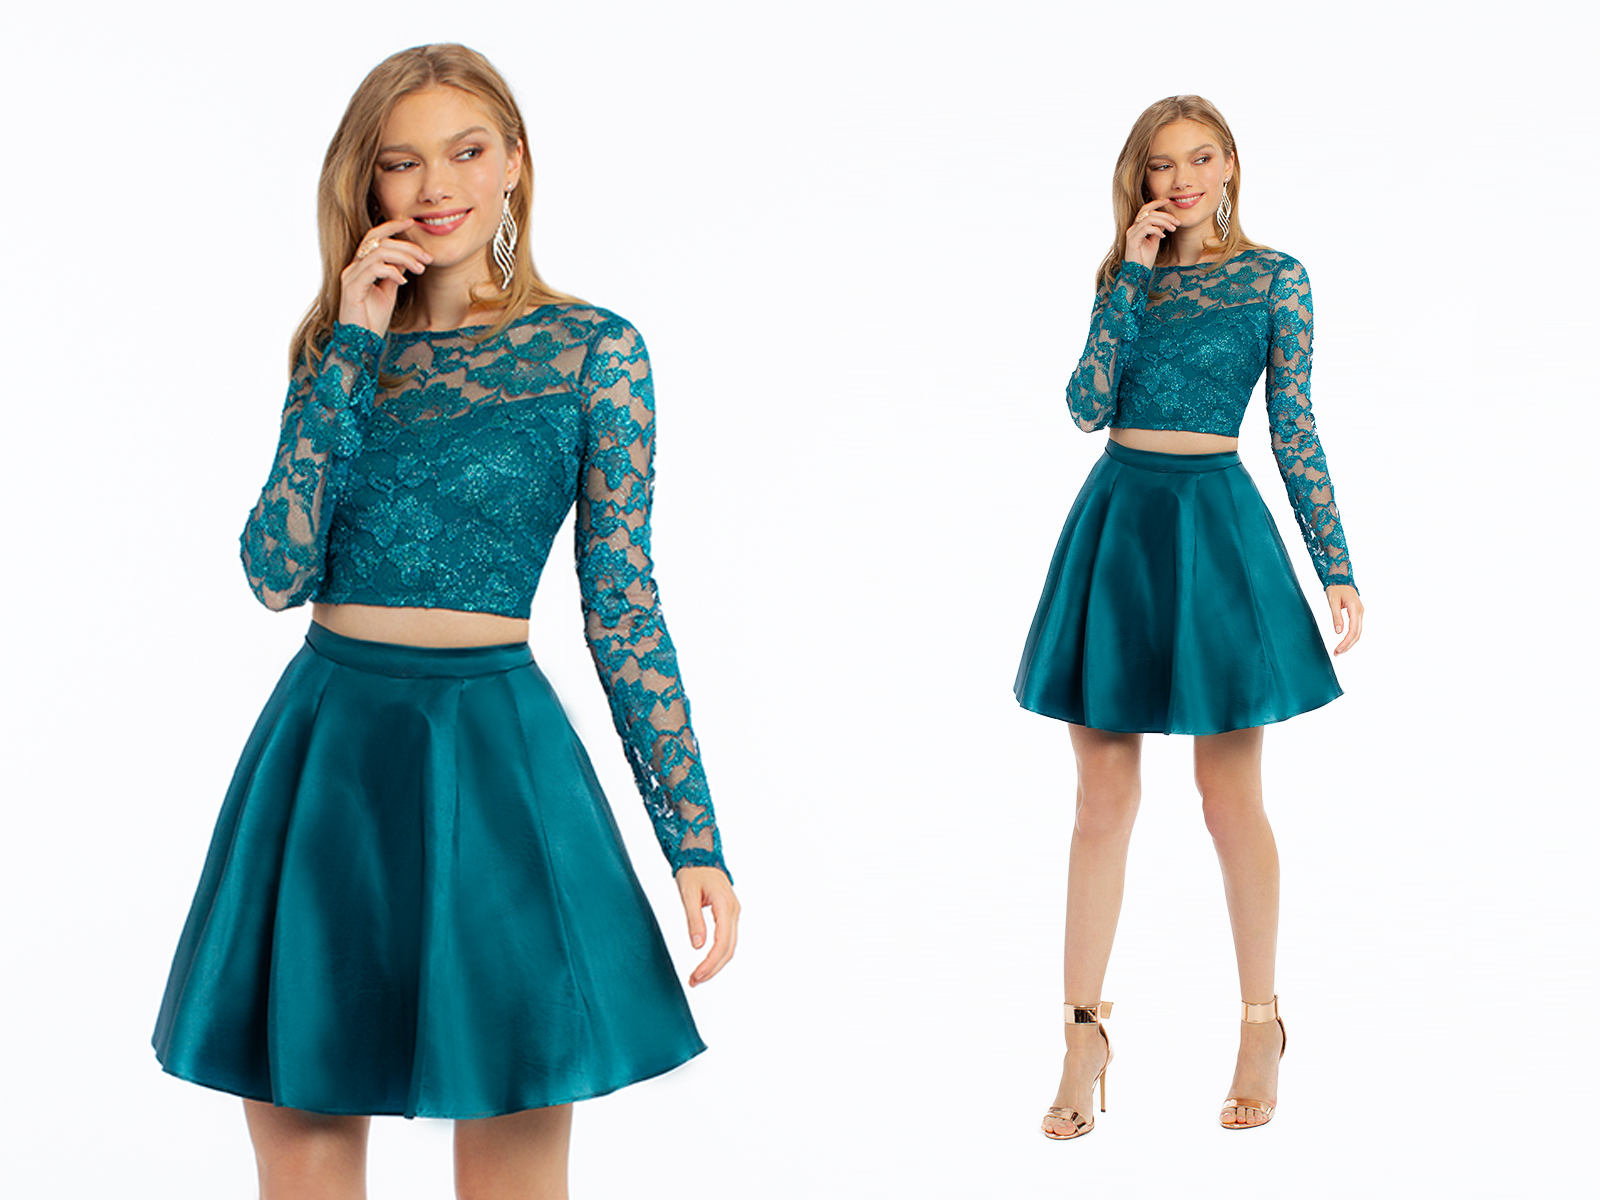 Green Homecoming Dress by Camille La Vie